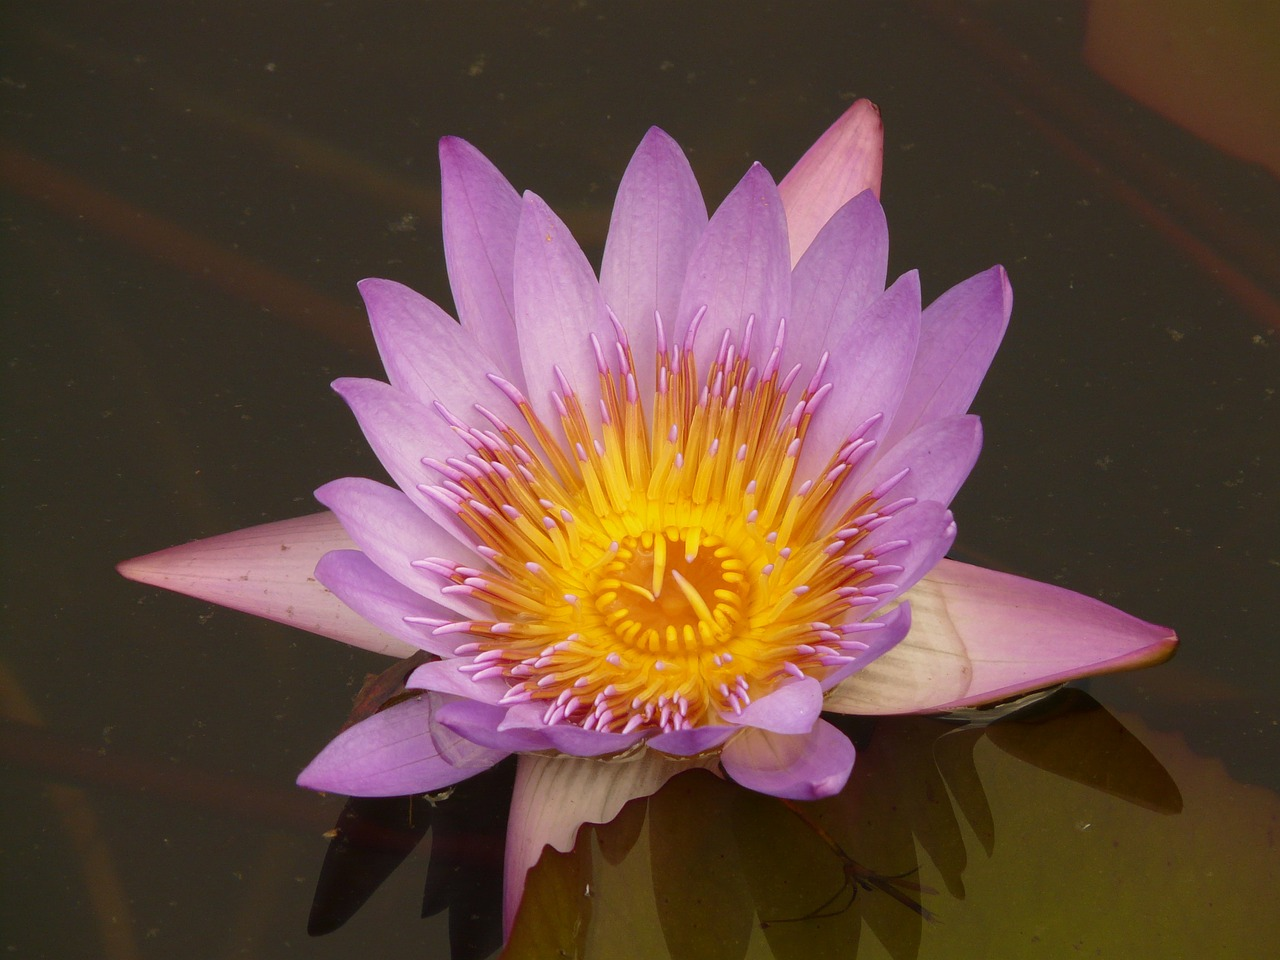 water lily blossom bloom free photo